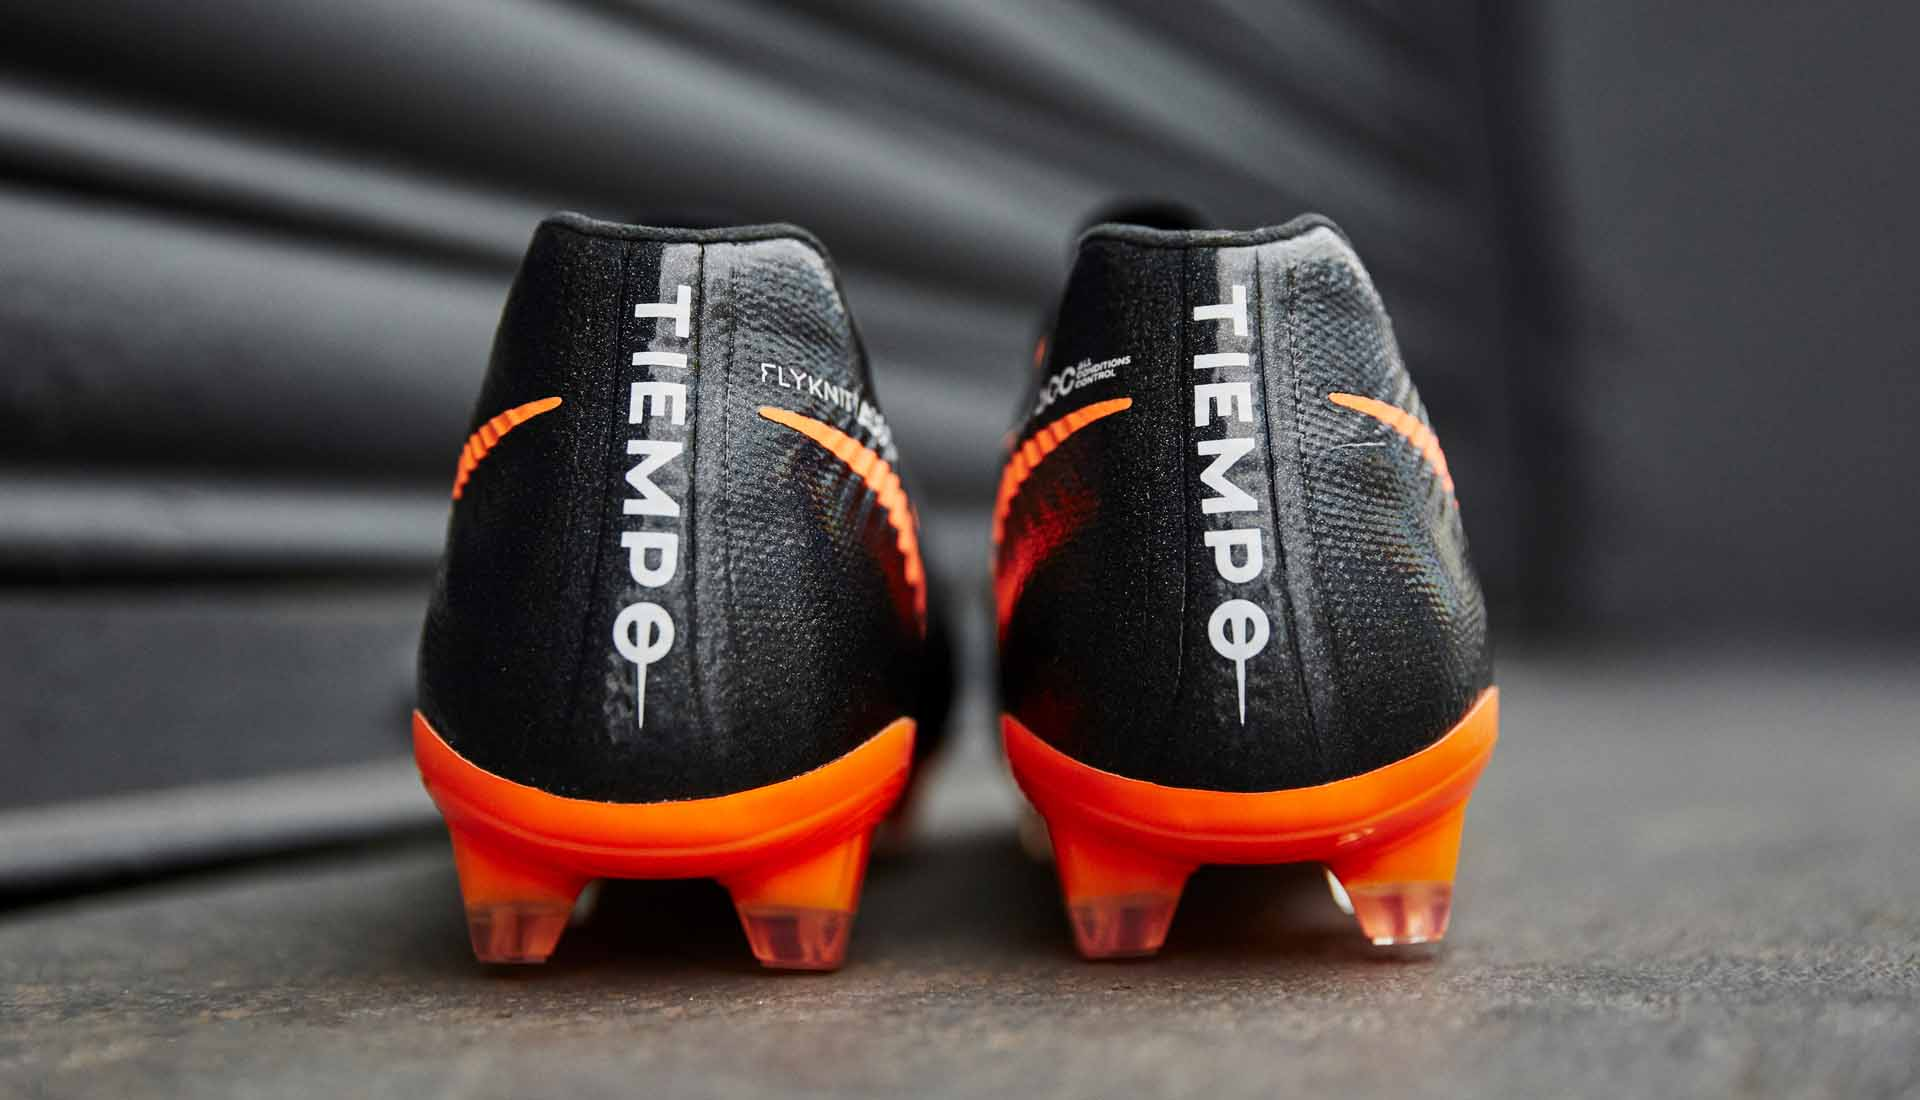 Chaussures de foot Nike Tiempo 7 Fast AF pack